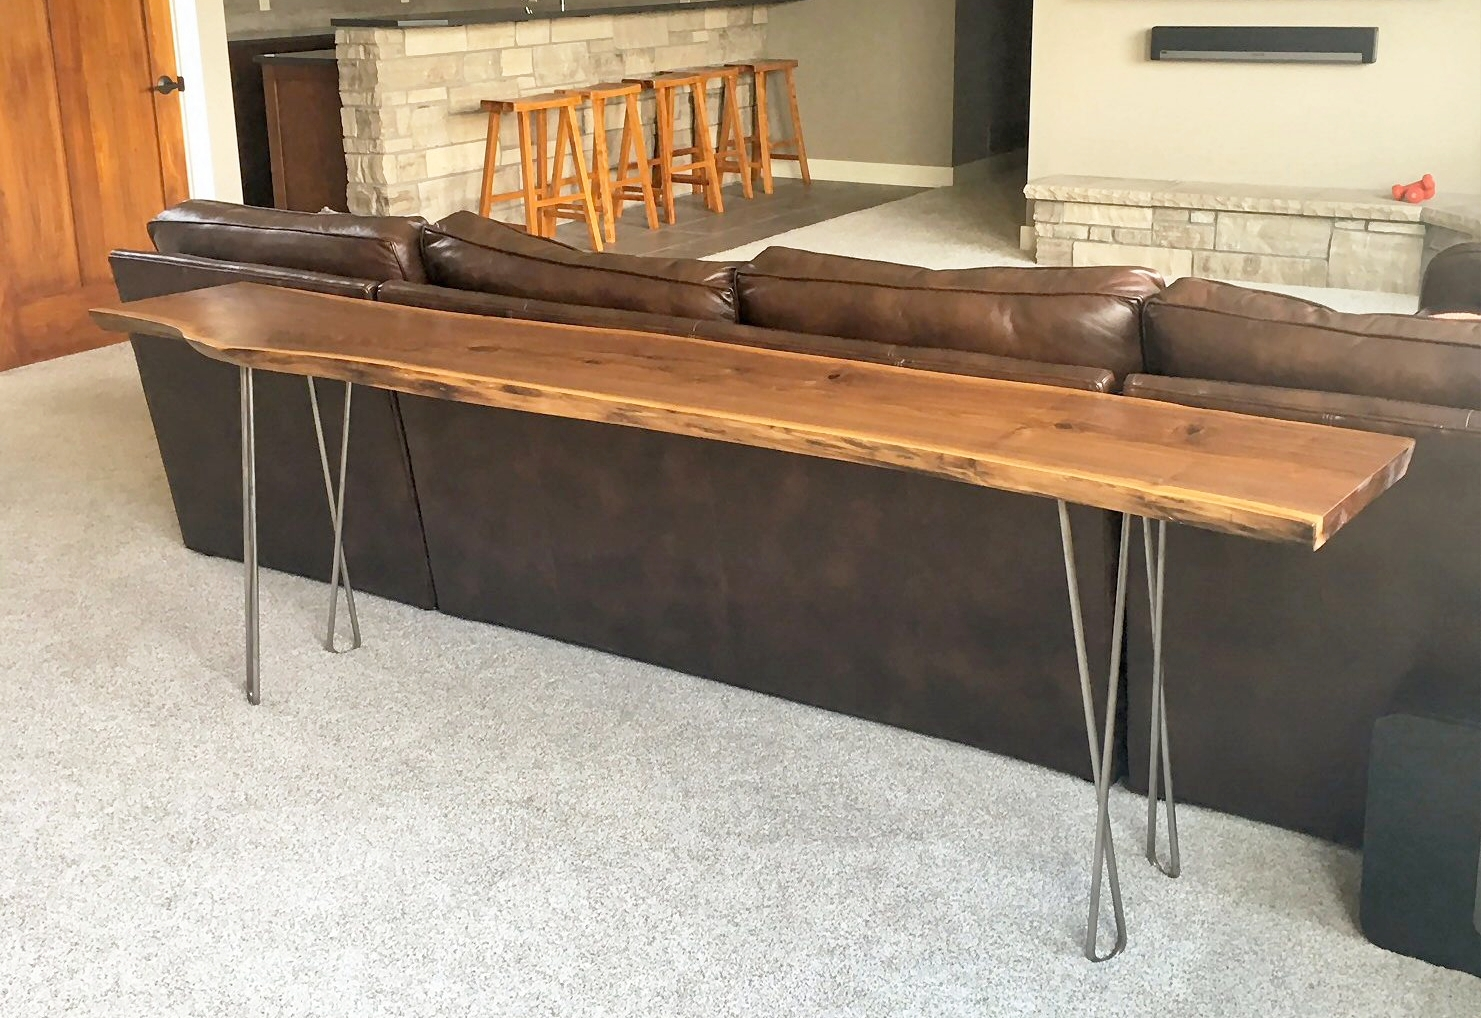 """Black Walnut Live Edge Sofa/Entry Table 96"""" L X 14"""" W X 30"""" T. The legs come in a variety of designs. This table has raw metal twisted hairpin legs....$525.00"""